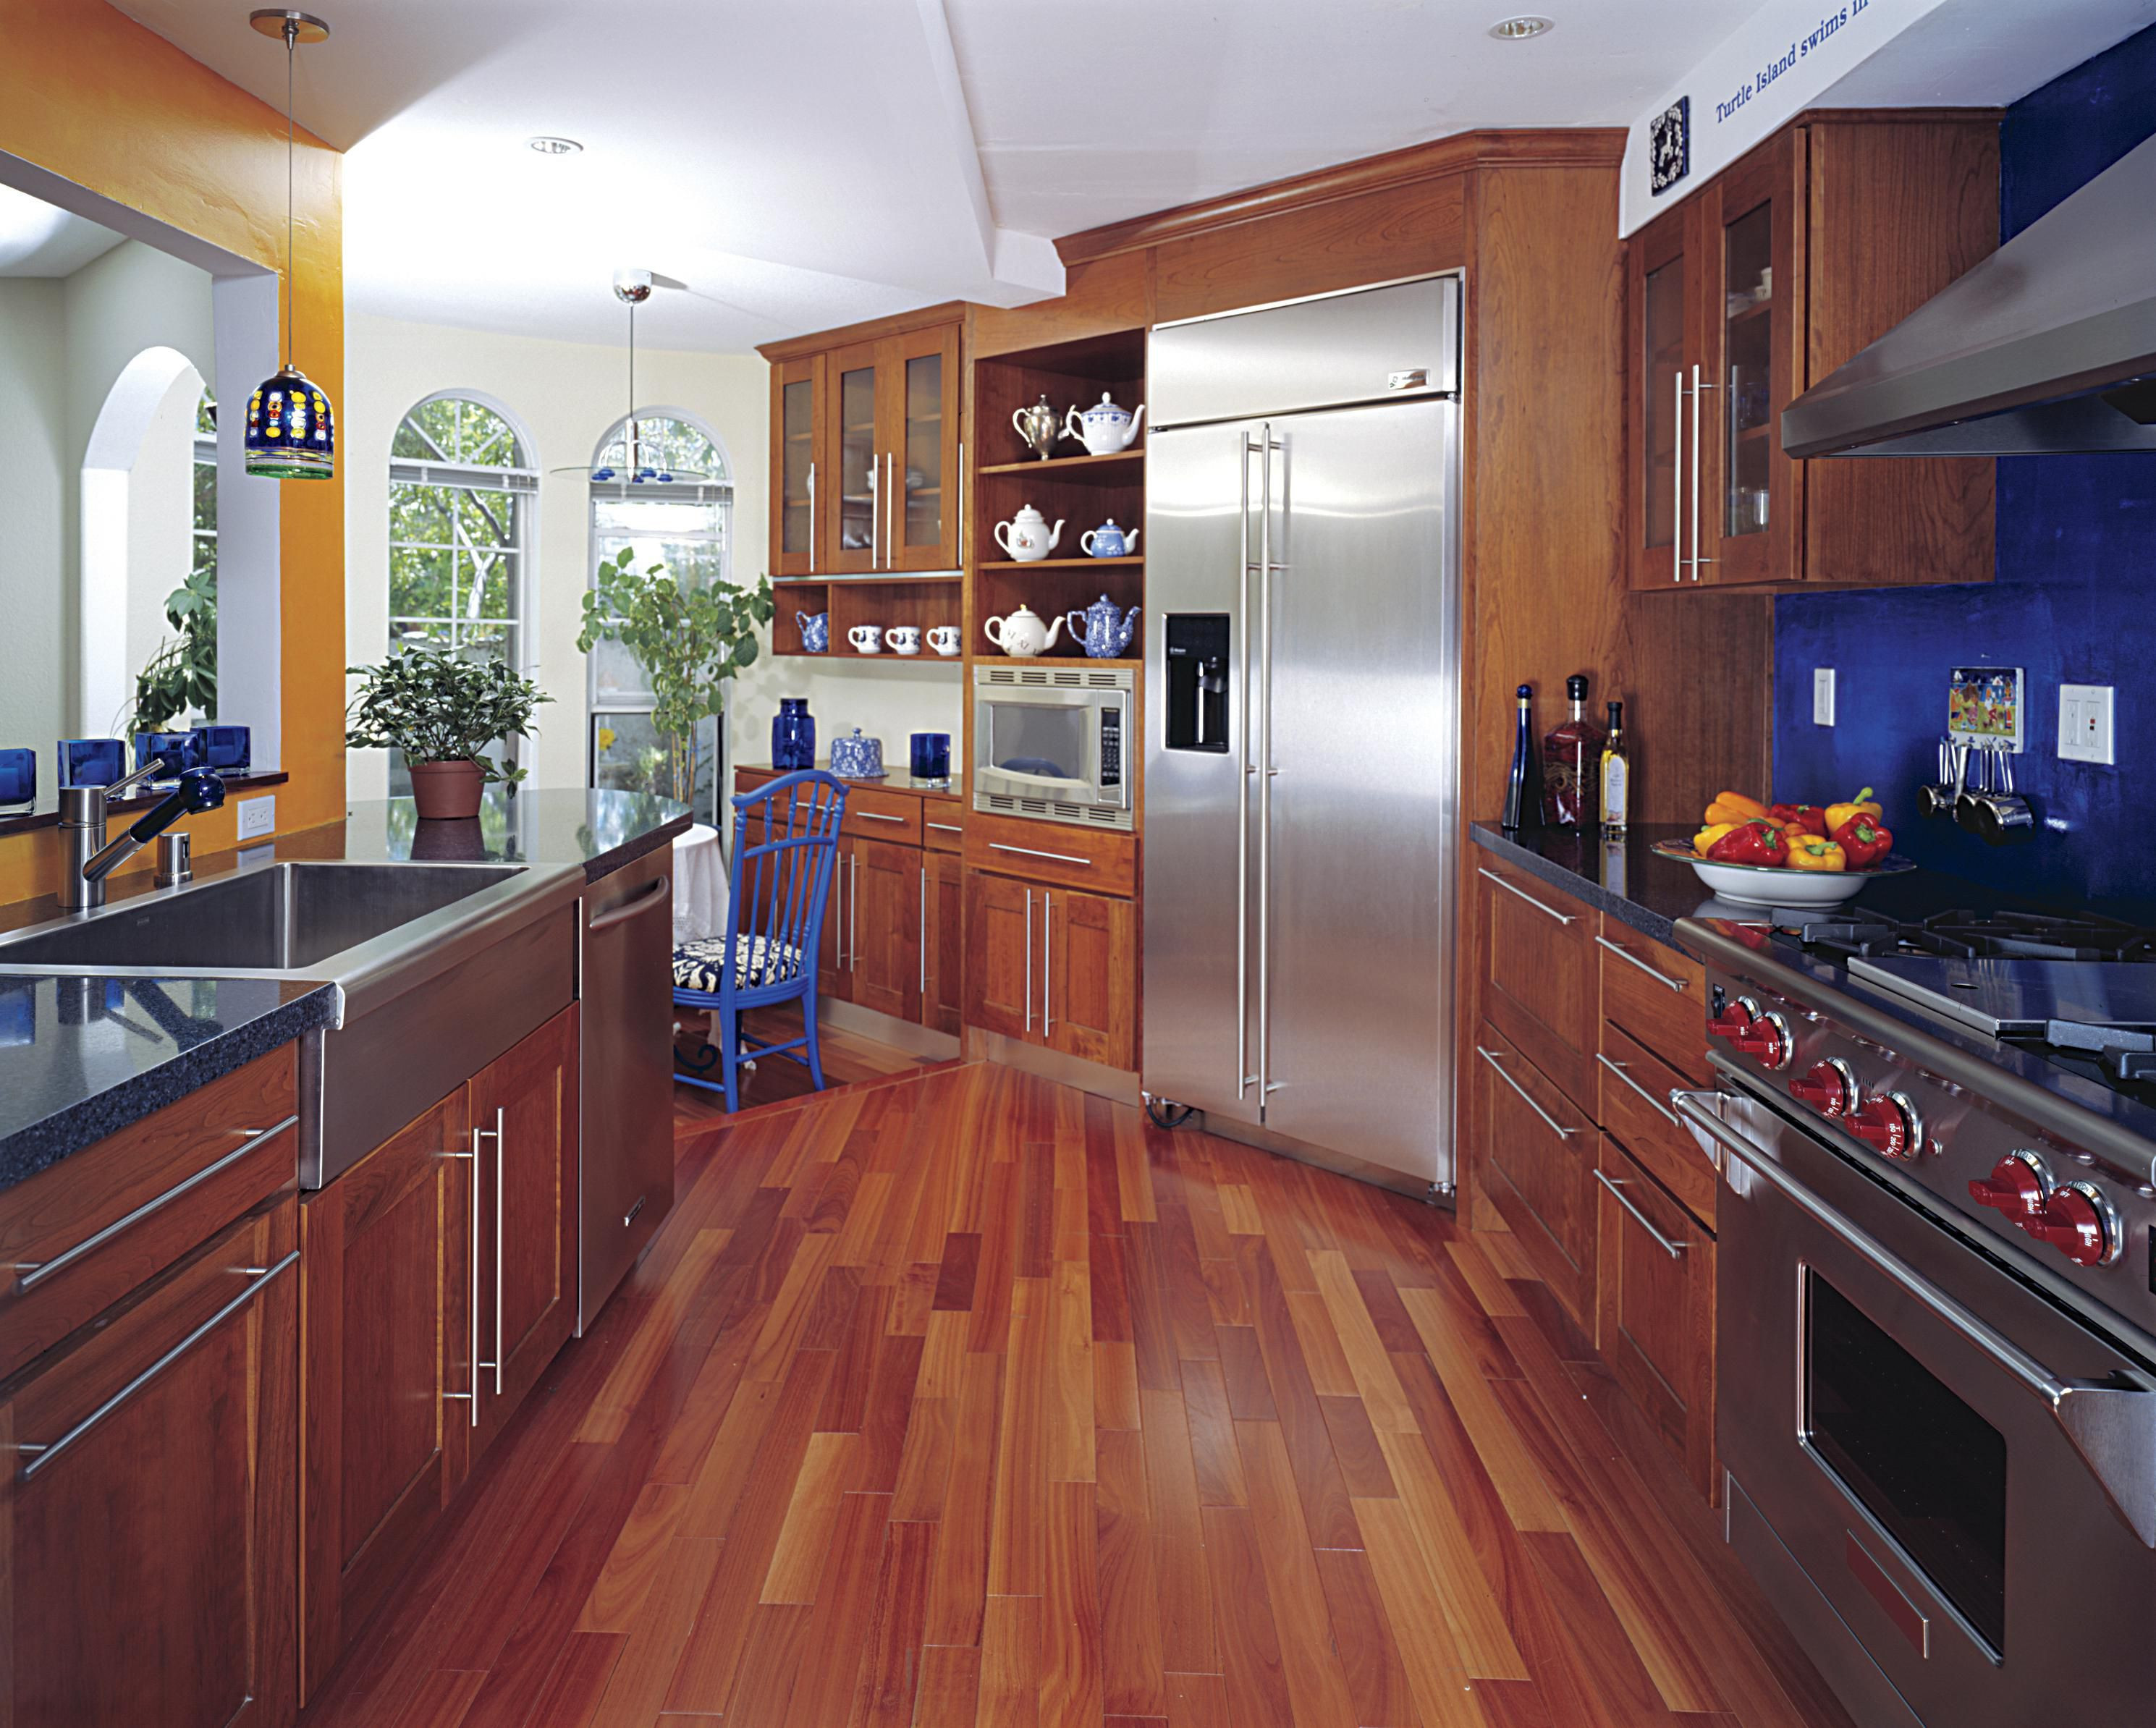 rug in kitchen with hardwood floor of hardwood floor in a kitchen is this allowed with regard to 186828472 56a49f3a5f9b58b7d0d7e142